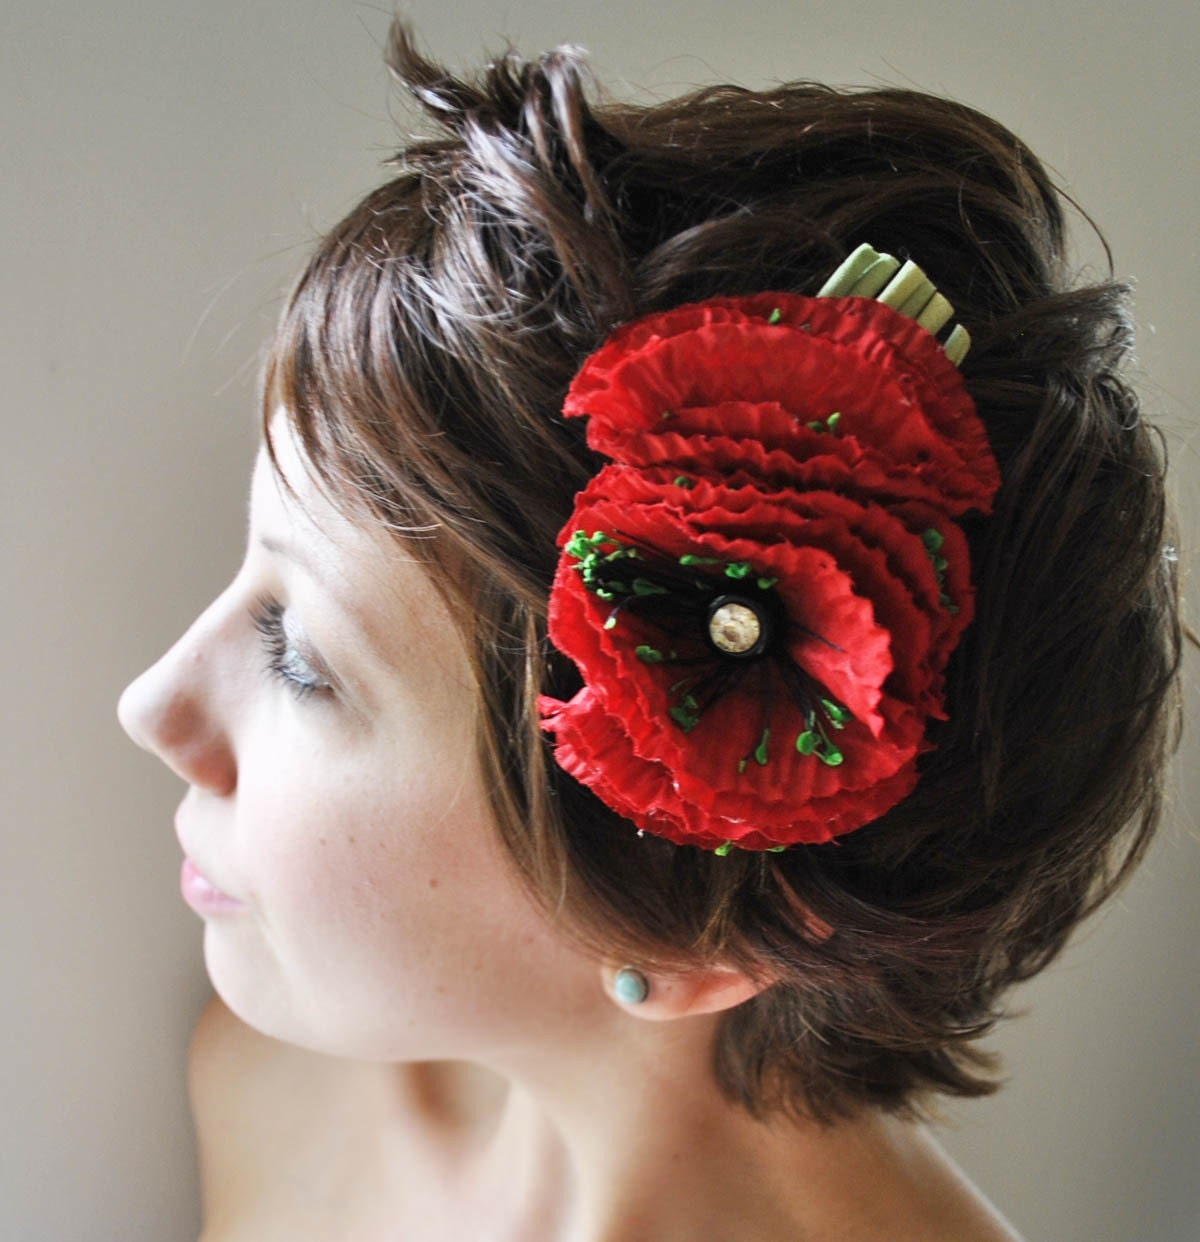 poppies - vintage millinery comb